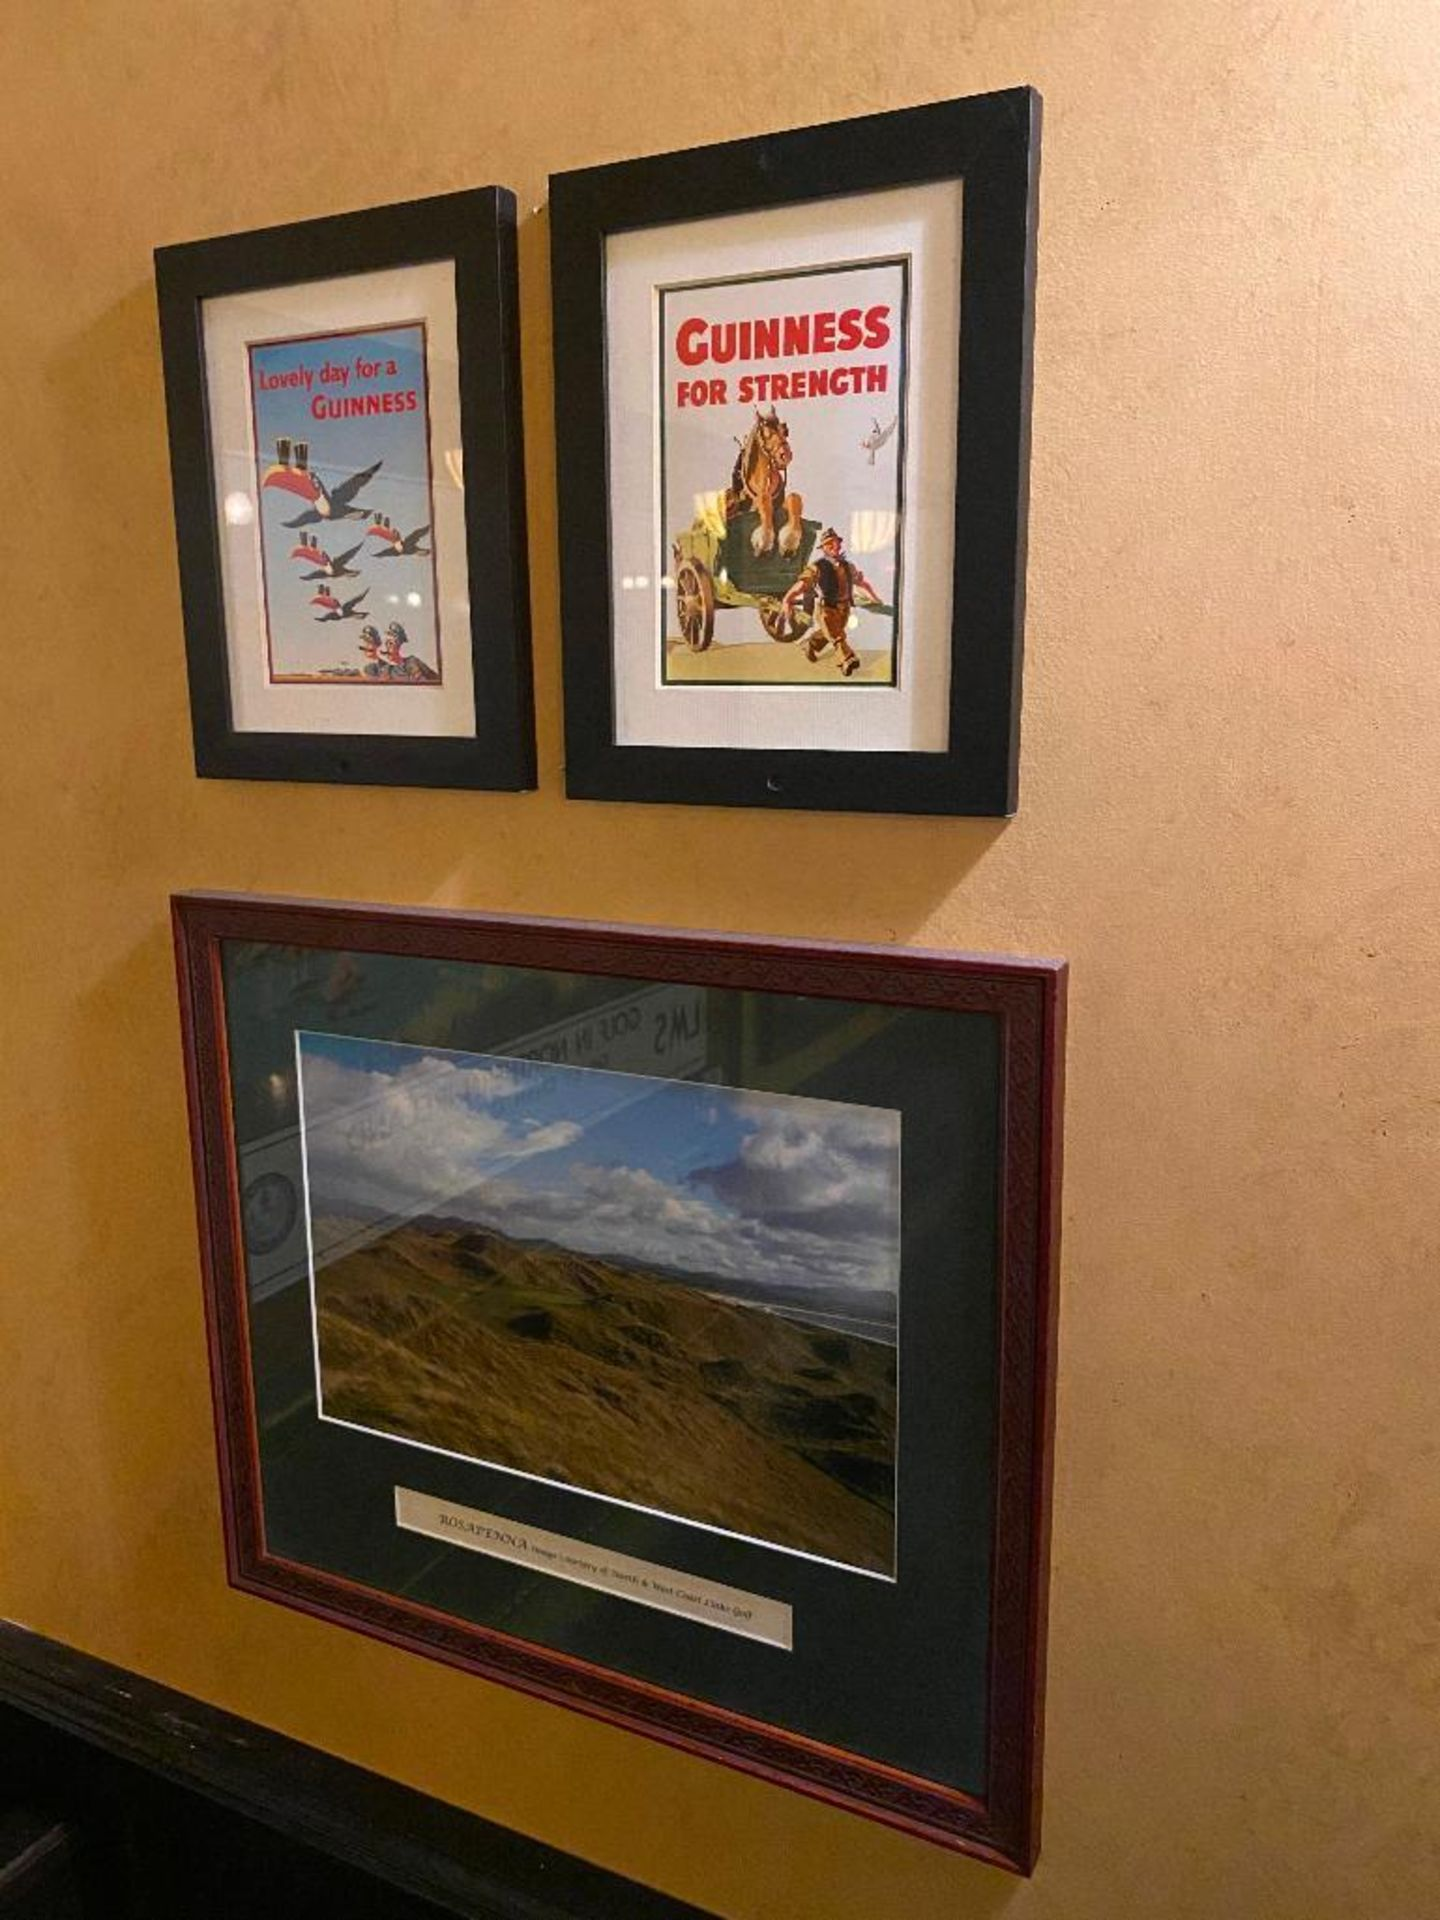 LOT OF (6) FRAMED MEMORABILIA PHOTOS & (1) PLAQUE - NOTE: REQUIRES REMOVAL FROM WALL, PLEASE INSPECT - Image 5 of 5